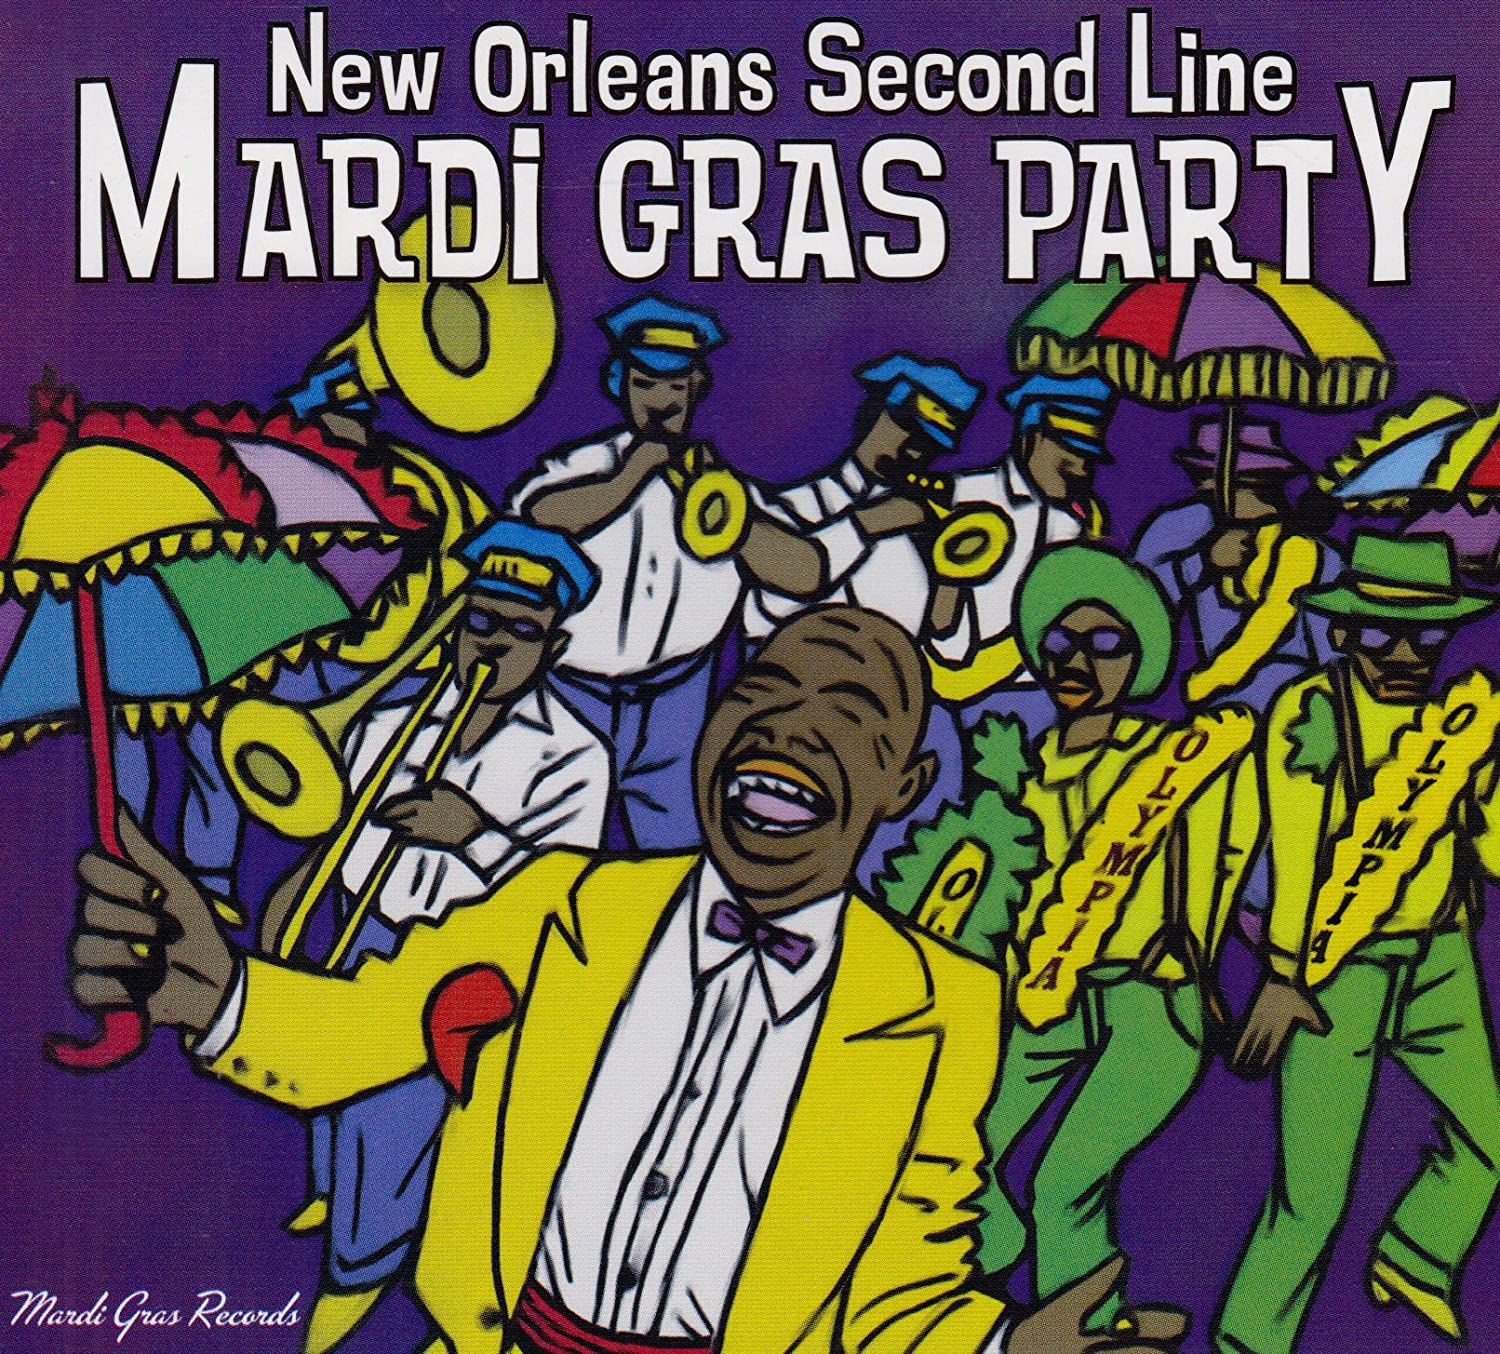 Mardi Gras Party New Orleans Super beauty product restock quality top Raleigh Mall Line Second